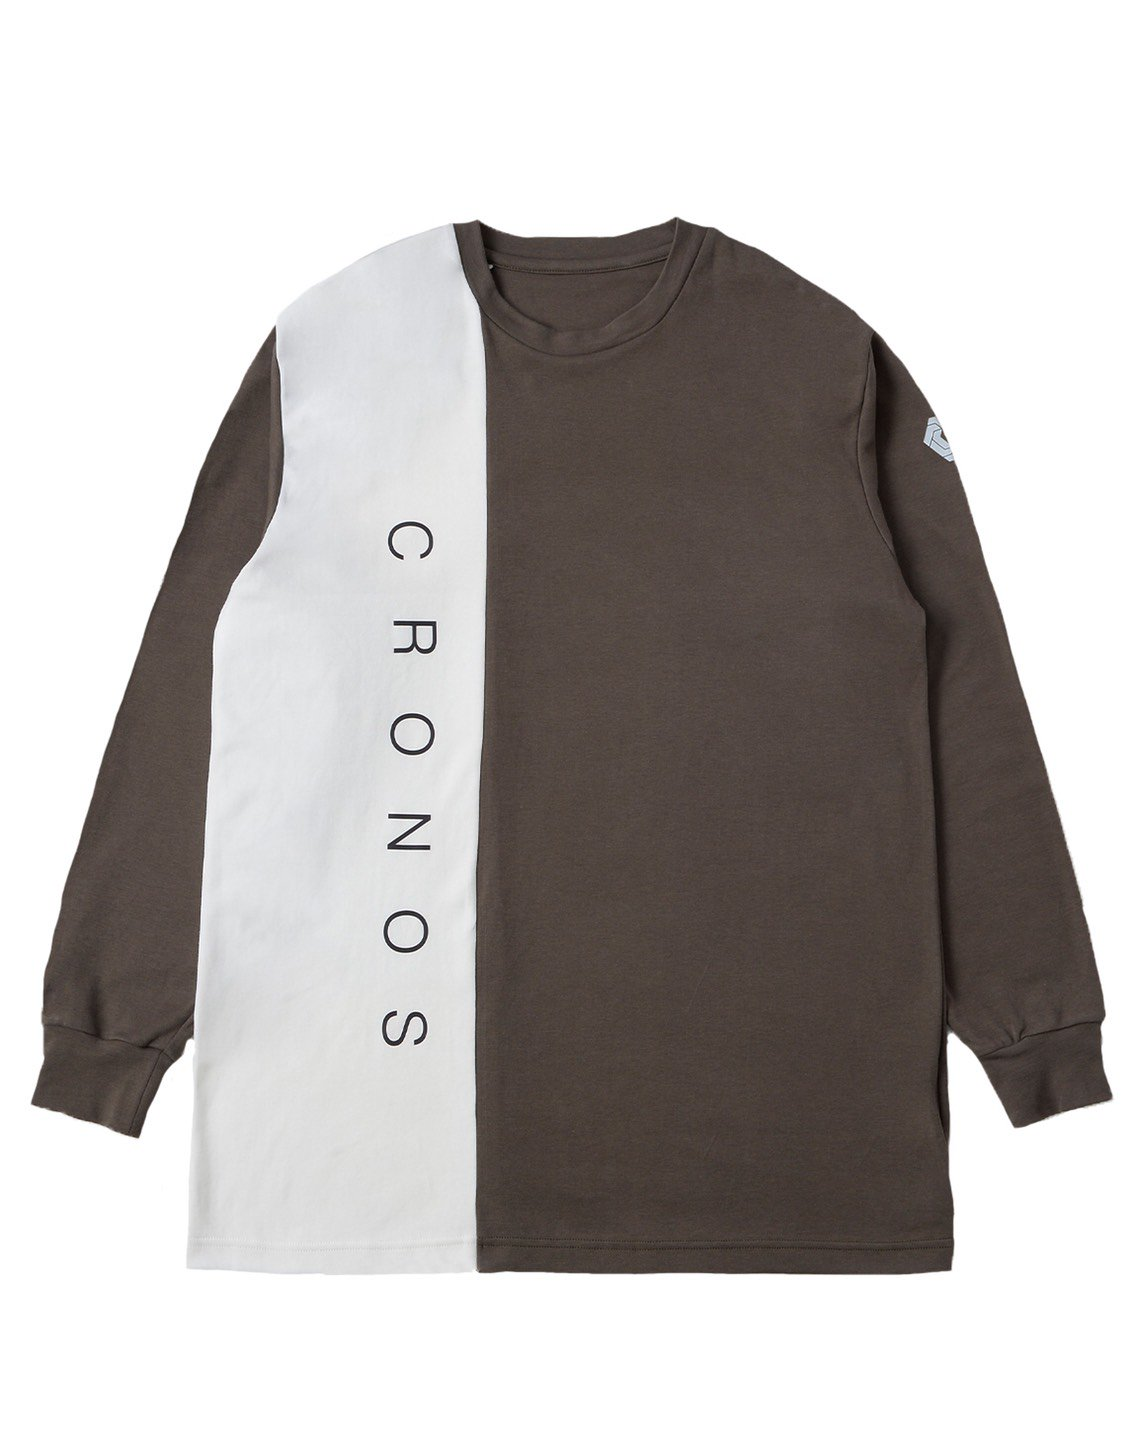 <img class='new_mark_img1' src='https://img.shop-pro.jp/img/new/icons55.gif' style='border:none;display:inline;margin:0px;padding:0px;width:auto;' />CRONOS RIGHT SIDE LINE LONGSLEEVE【KHAKI】